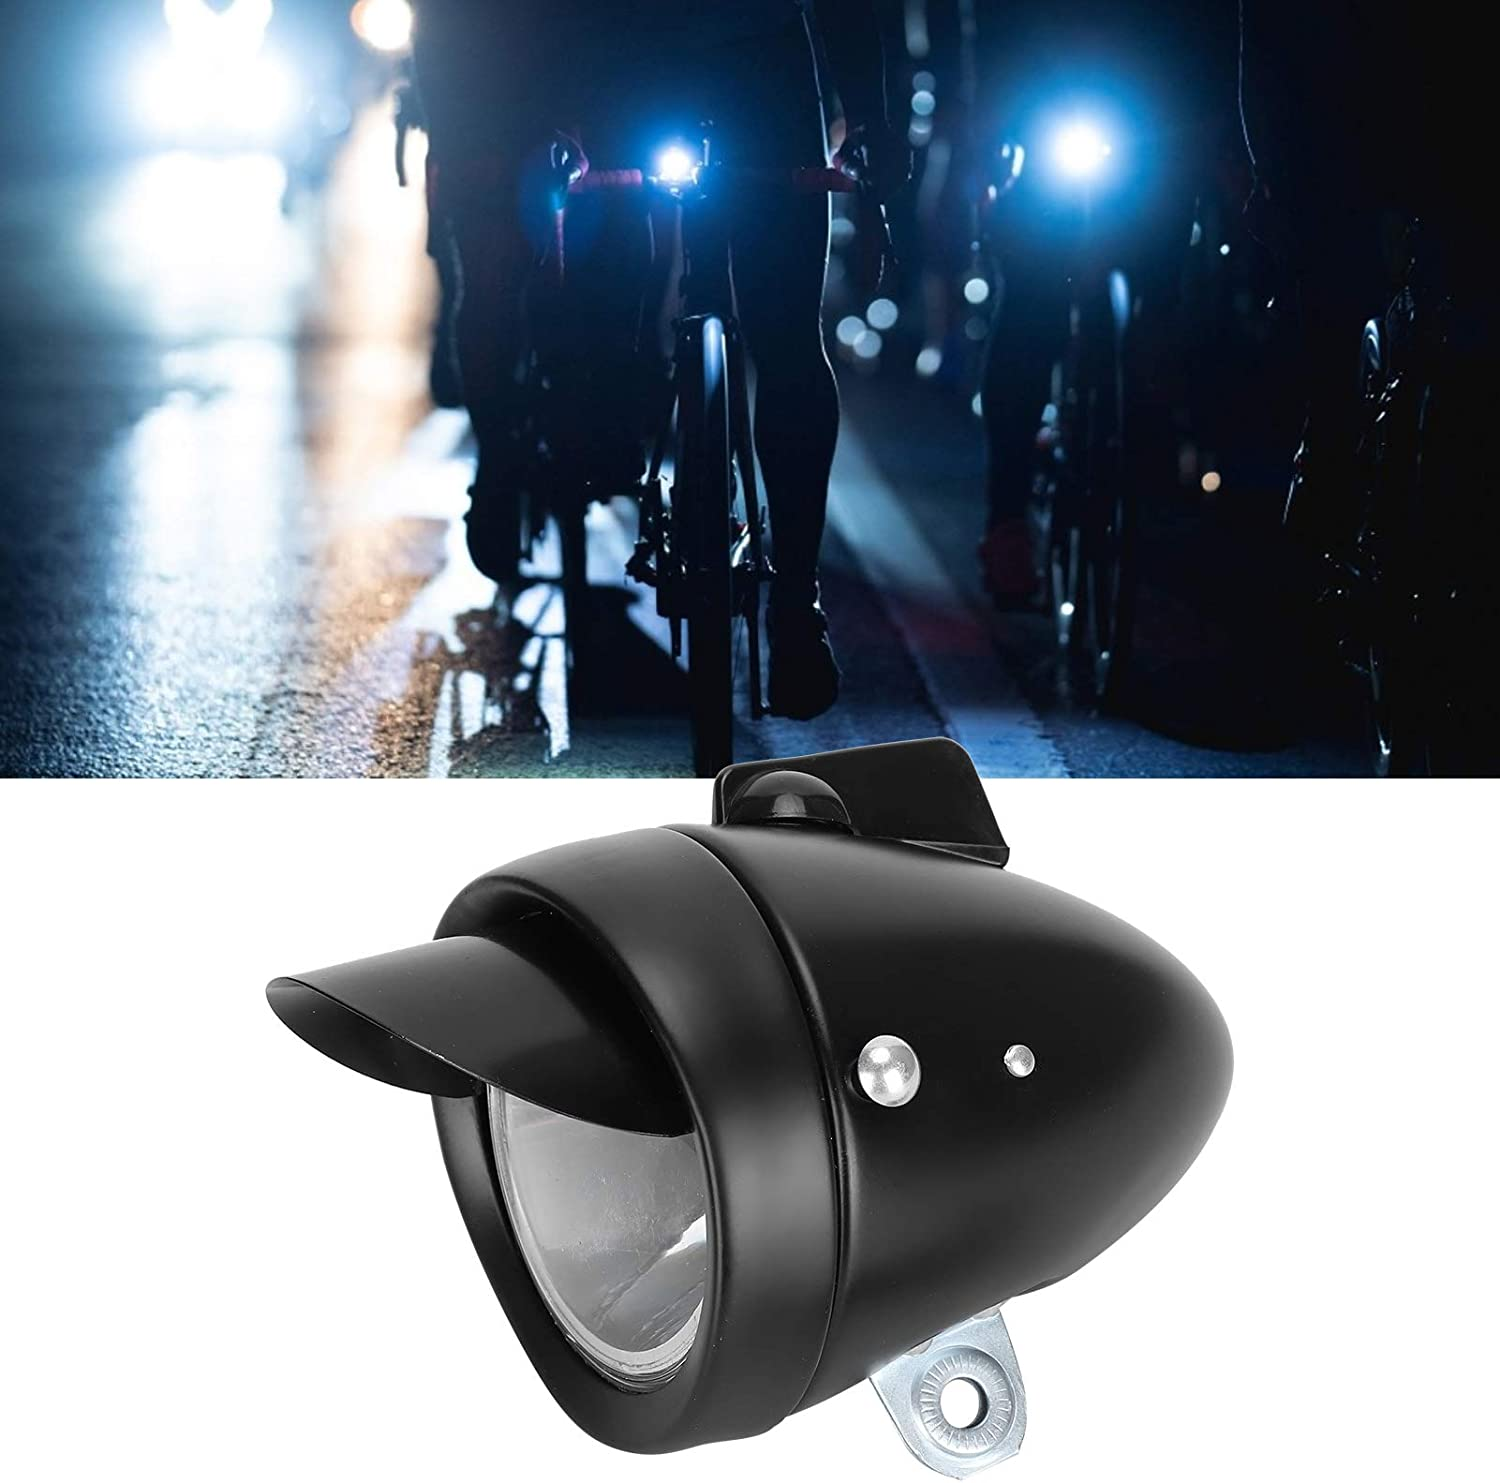 XQAQX Max 89% OFF Bike Max 44% OFF Front Bicycle Vintage Light